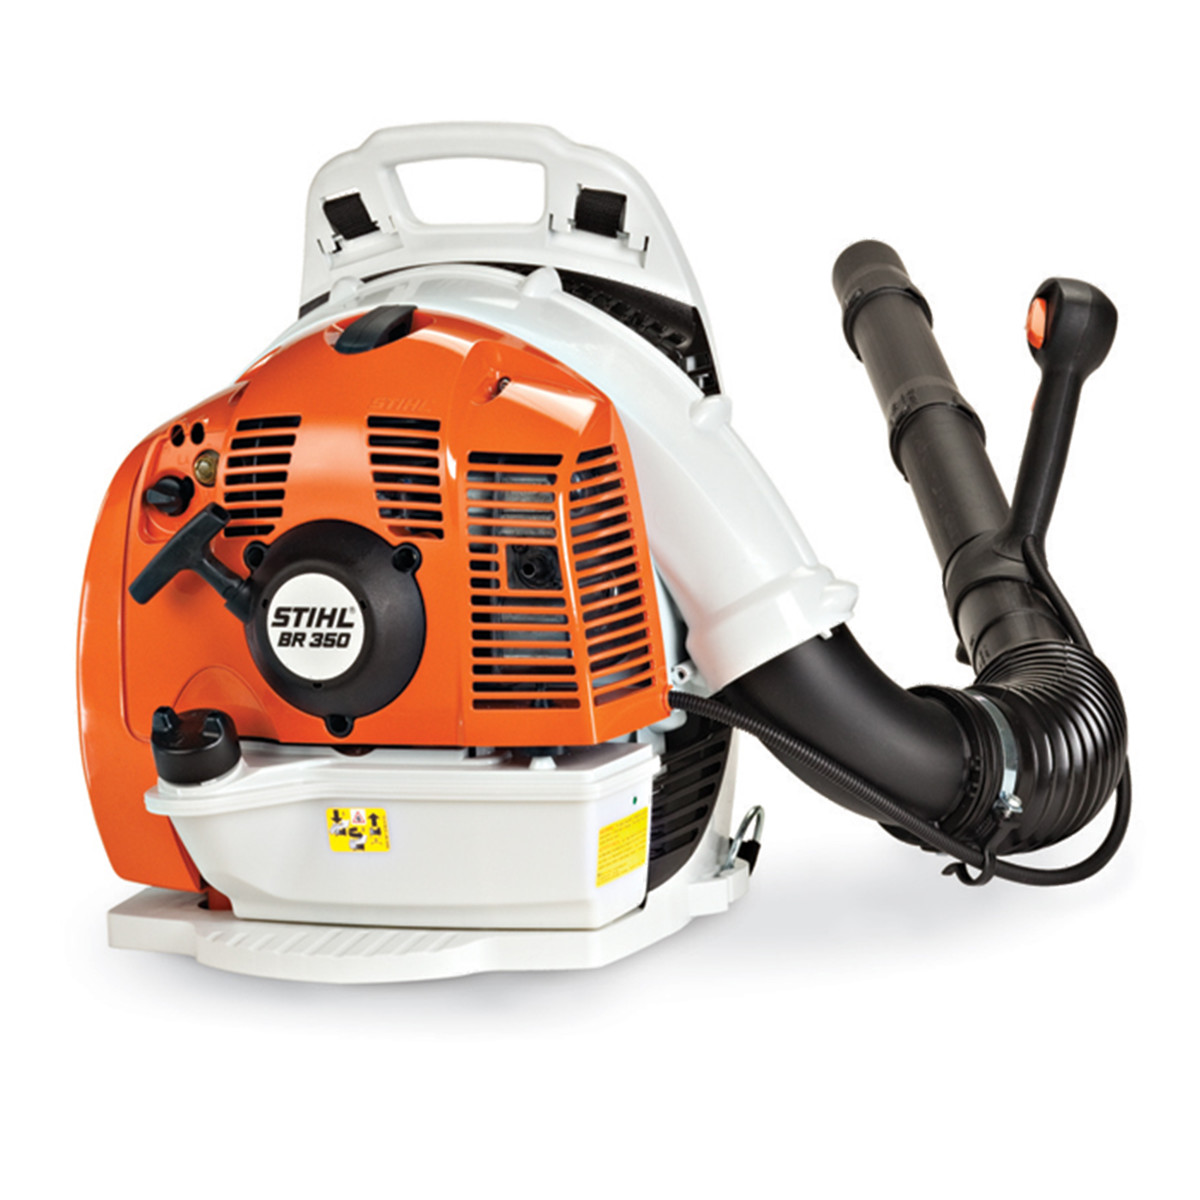 Stihl Backpack Blowers : Stihl backpack blower cc br